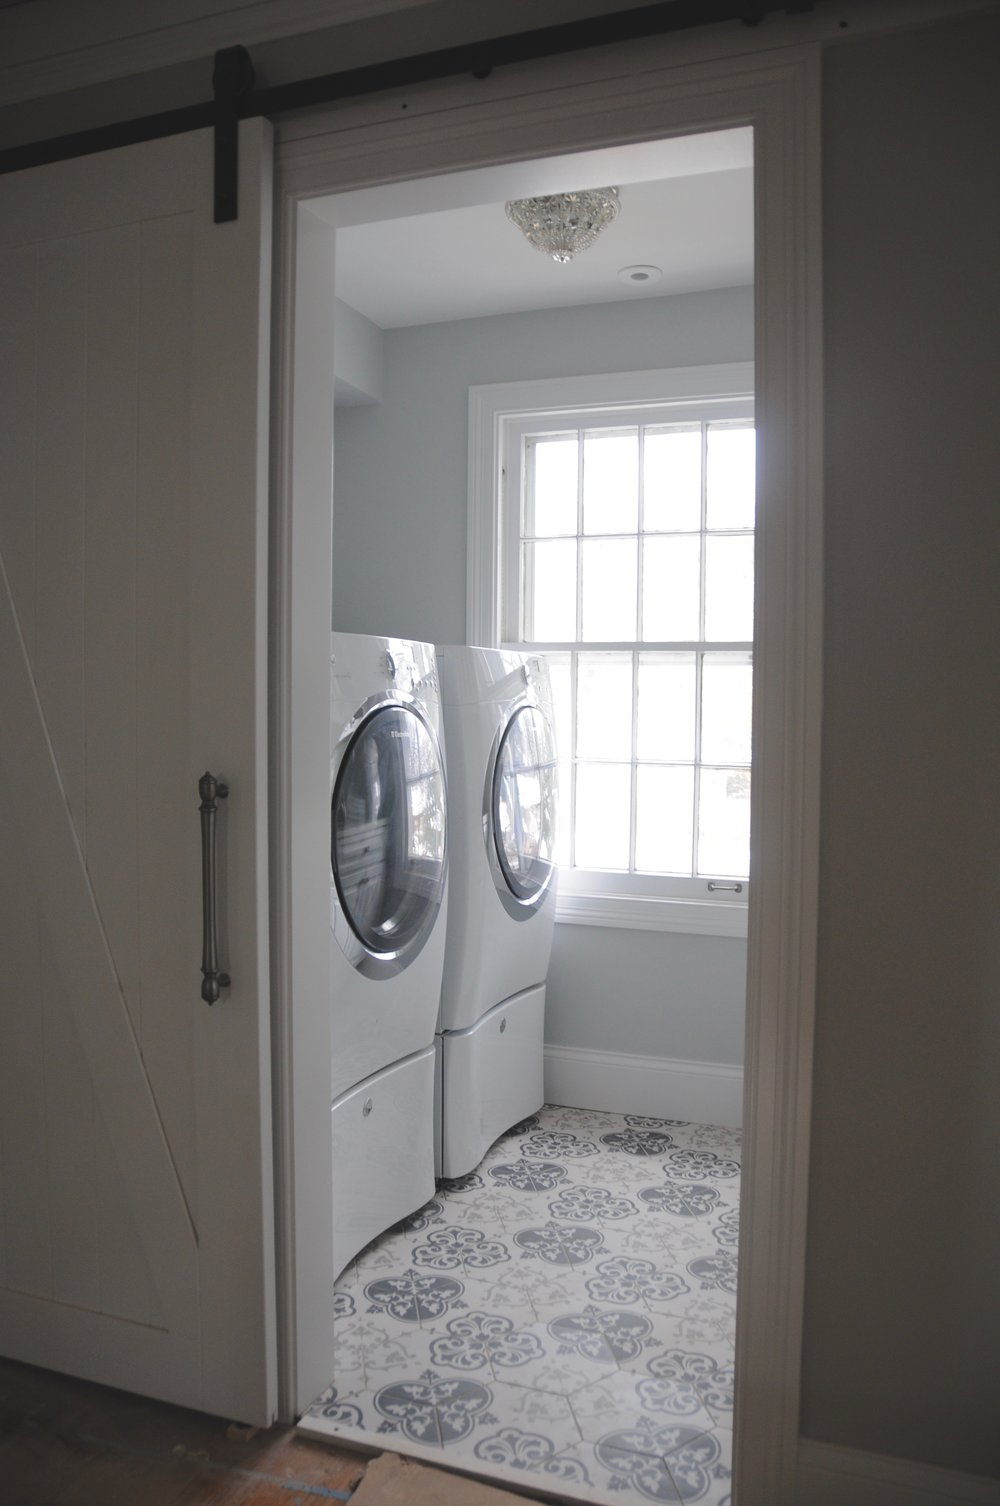 Mounting the machines on pedestals offers good ergonomics for loading and unloading the laundry as well as extra storage. A client let us repurpose the mini crystal flushmount on the ceiling when she no longer needed it. It's the perfect size and  a good use of surplus lighting fixtures. Who says your laundry room can't have a little glamour?